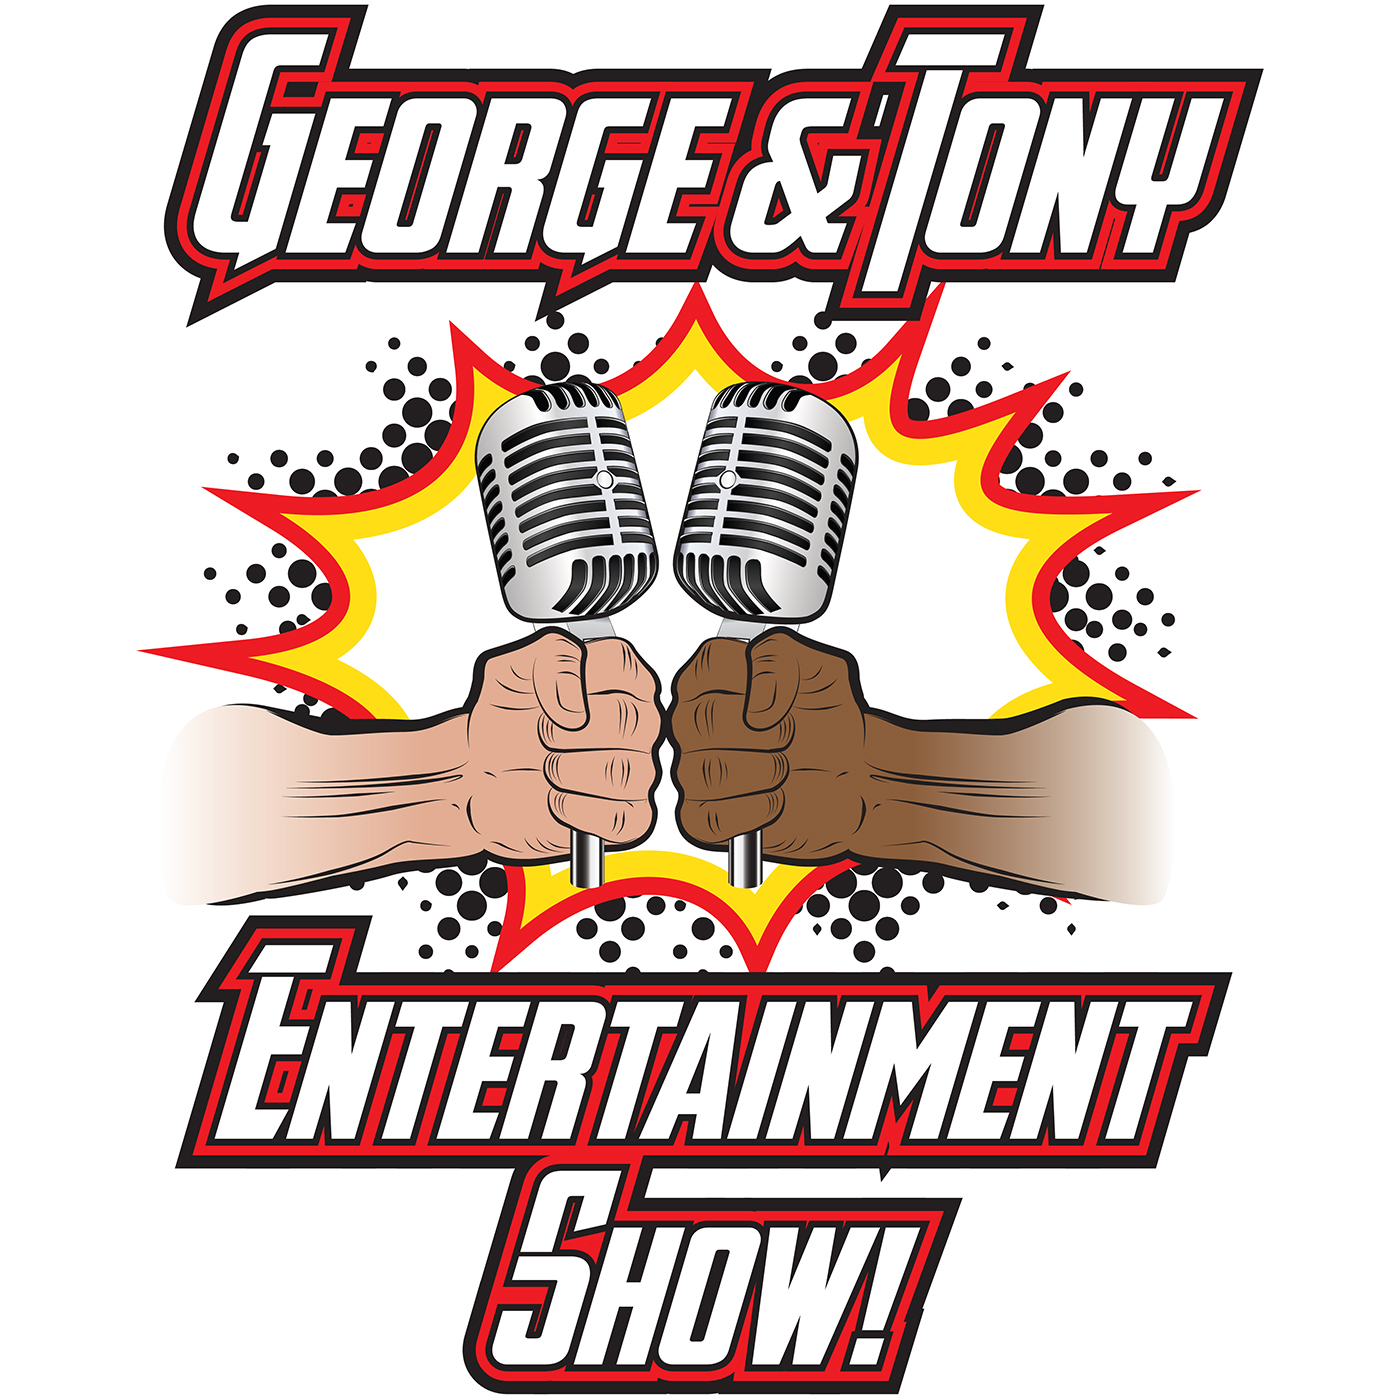 George and Tony Entertainment Show #63